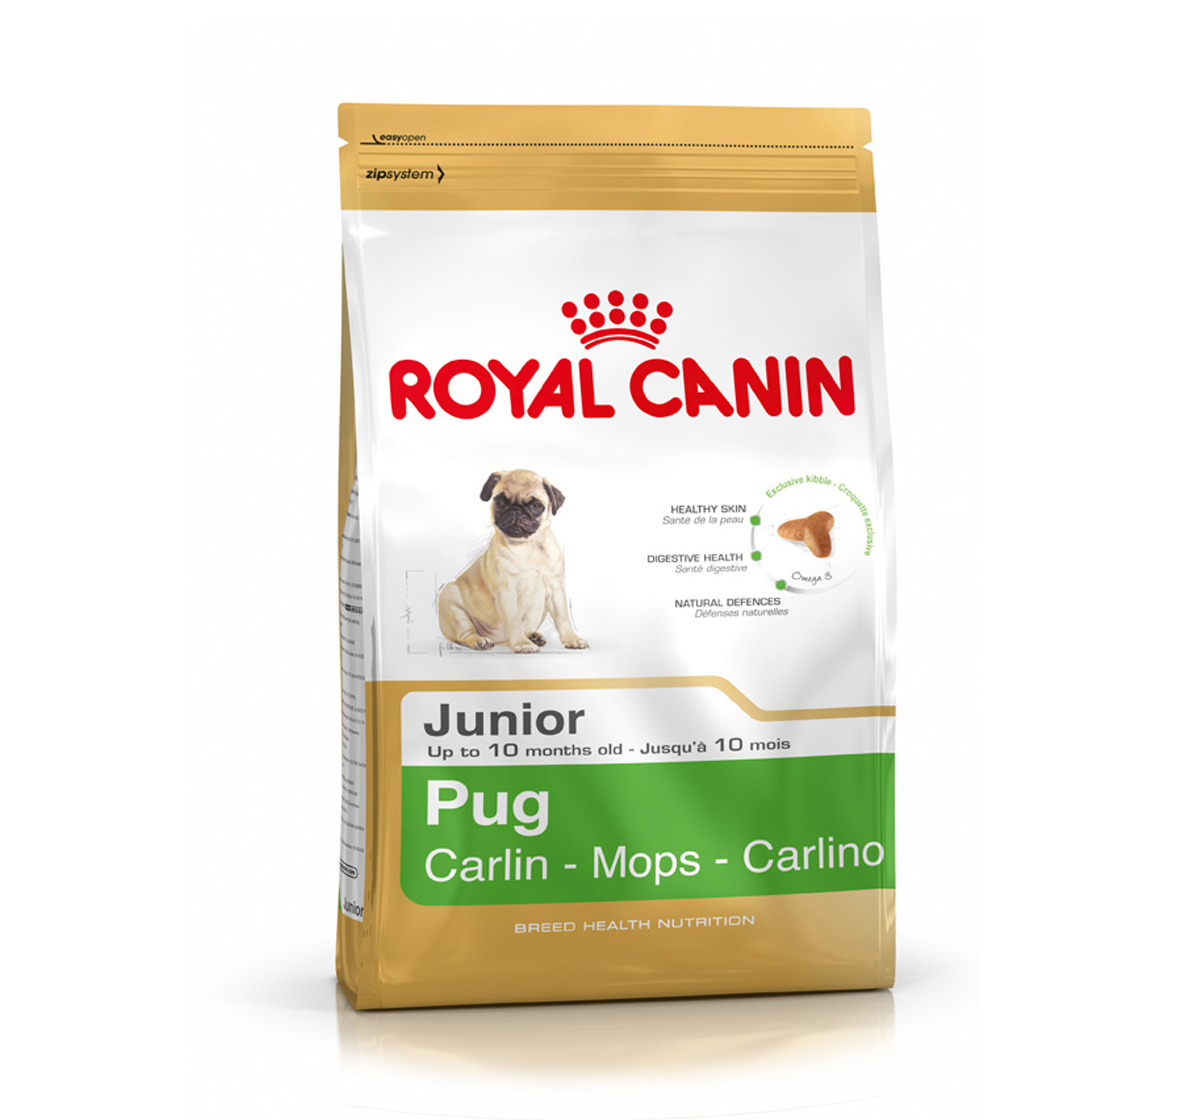 Royal Canin Pug Junior - 1.5 Kg